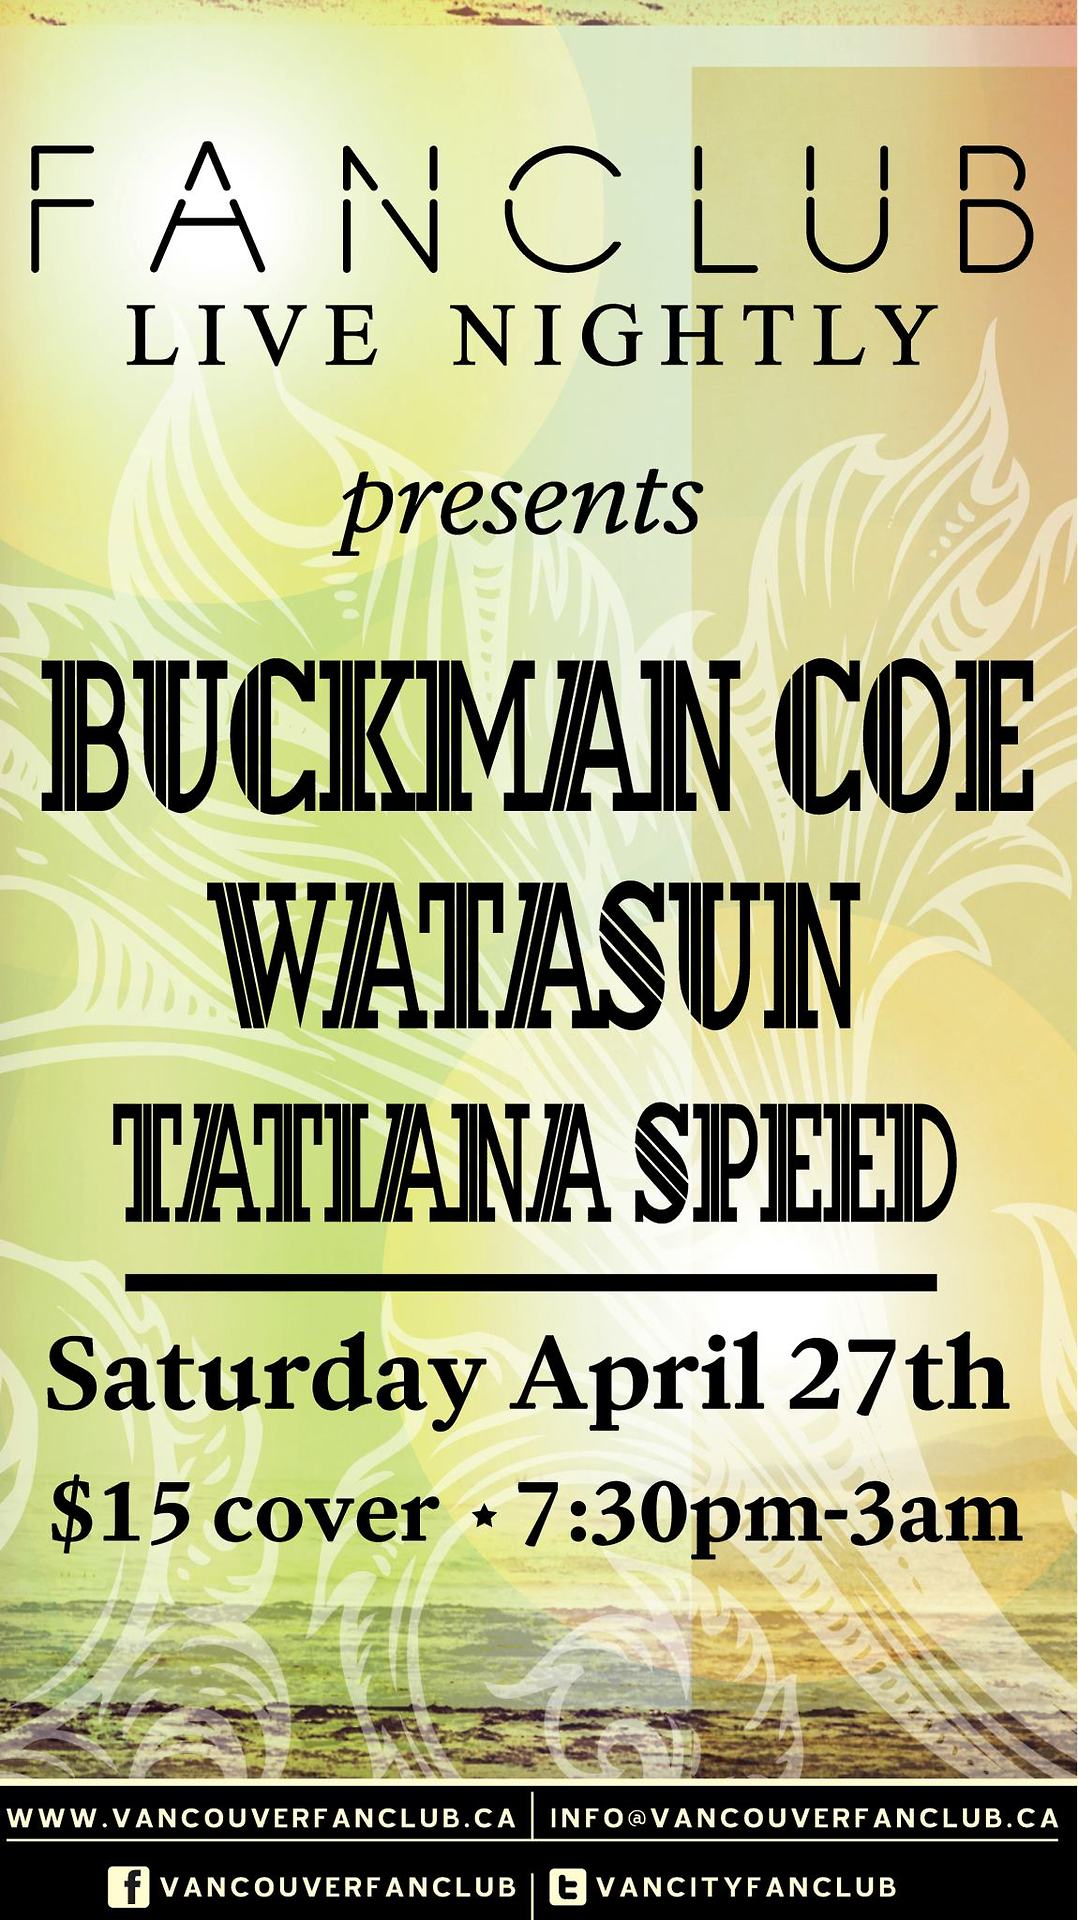 Our buddies Watasun are back together in Vancouver and we'll be helping celebrate with a few hundred of our closest friends at one of our city's newest and finest venues, Vancouver FanClub. We're pulling out the stops and assembling the big band for a late night romp of soul and reggae good vibrations.